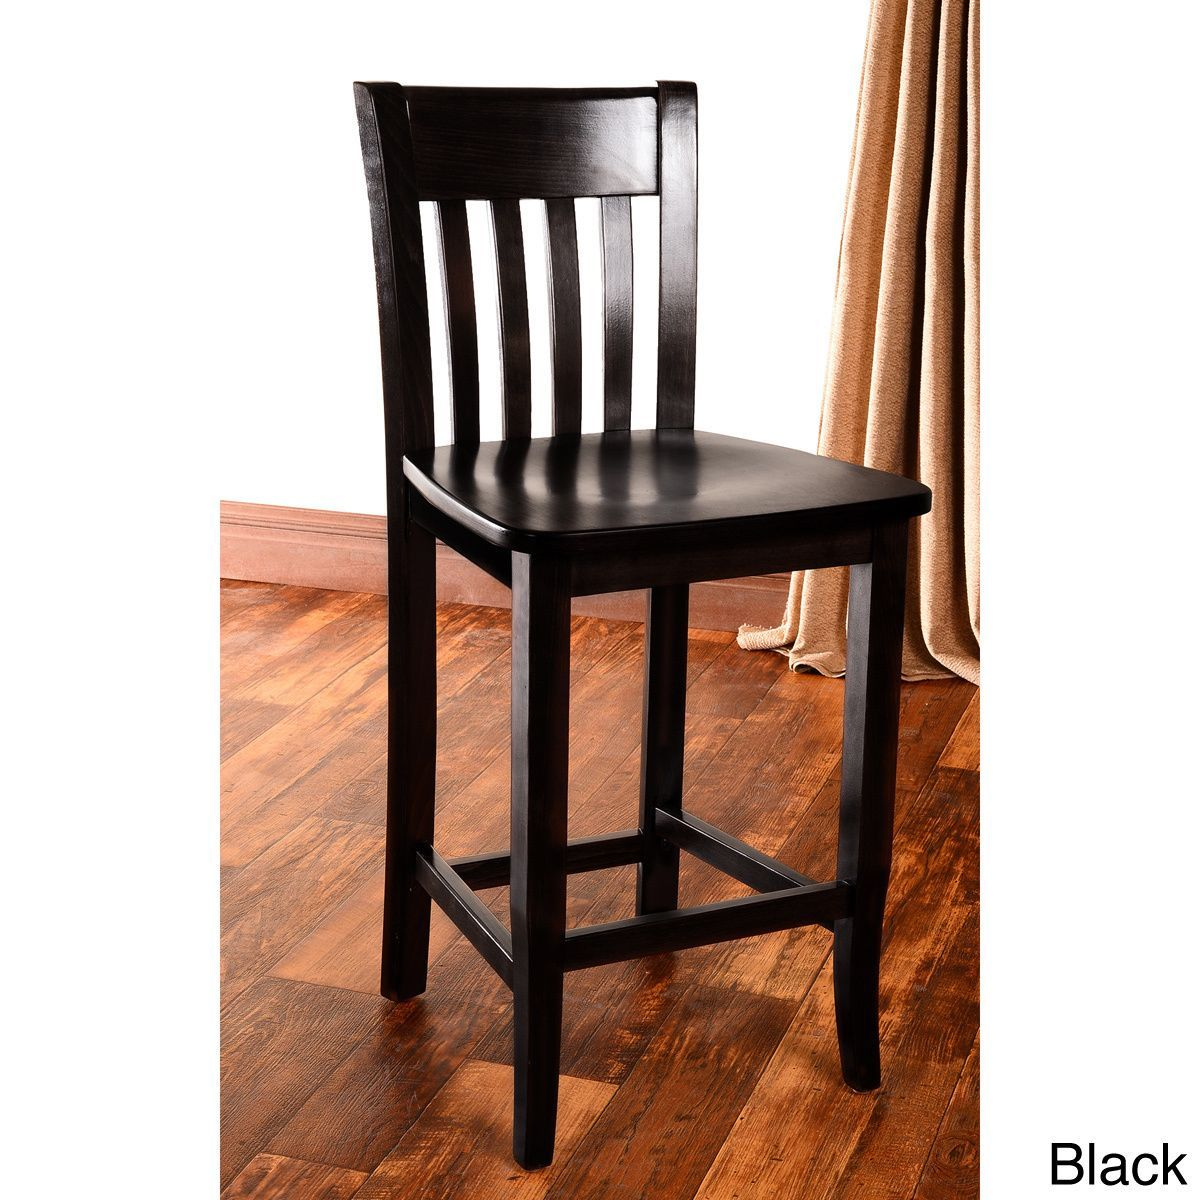 With a durable finish, this counter stool looks great in any setting. Stylish and durable, this chair makes a great addition to a bar, kitchen counter, or simply anywhere you might need an extra seat.